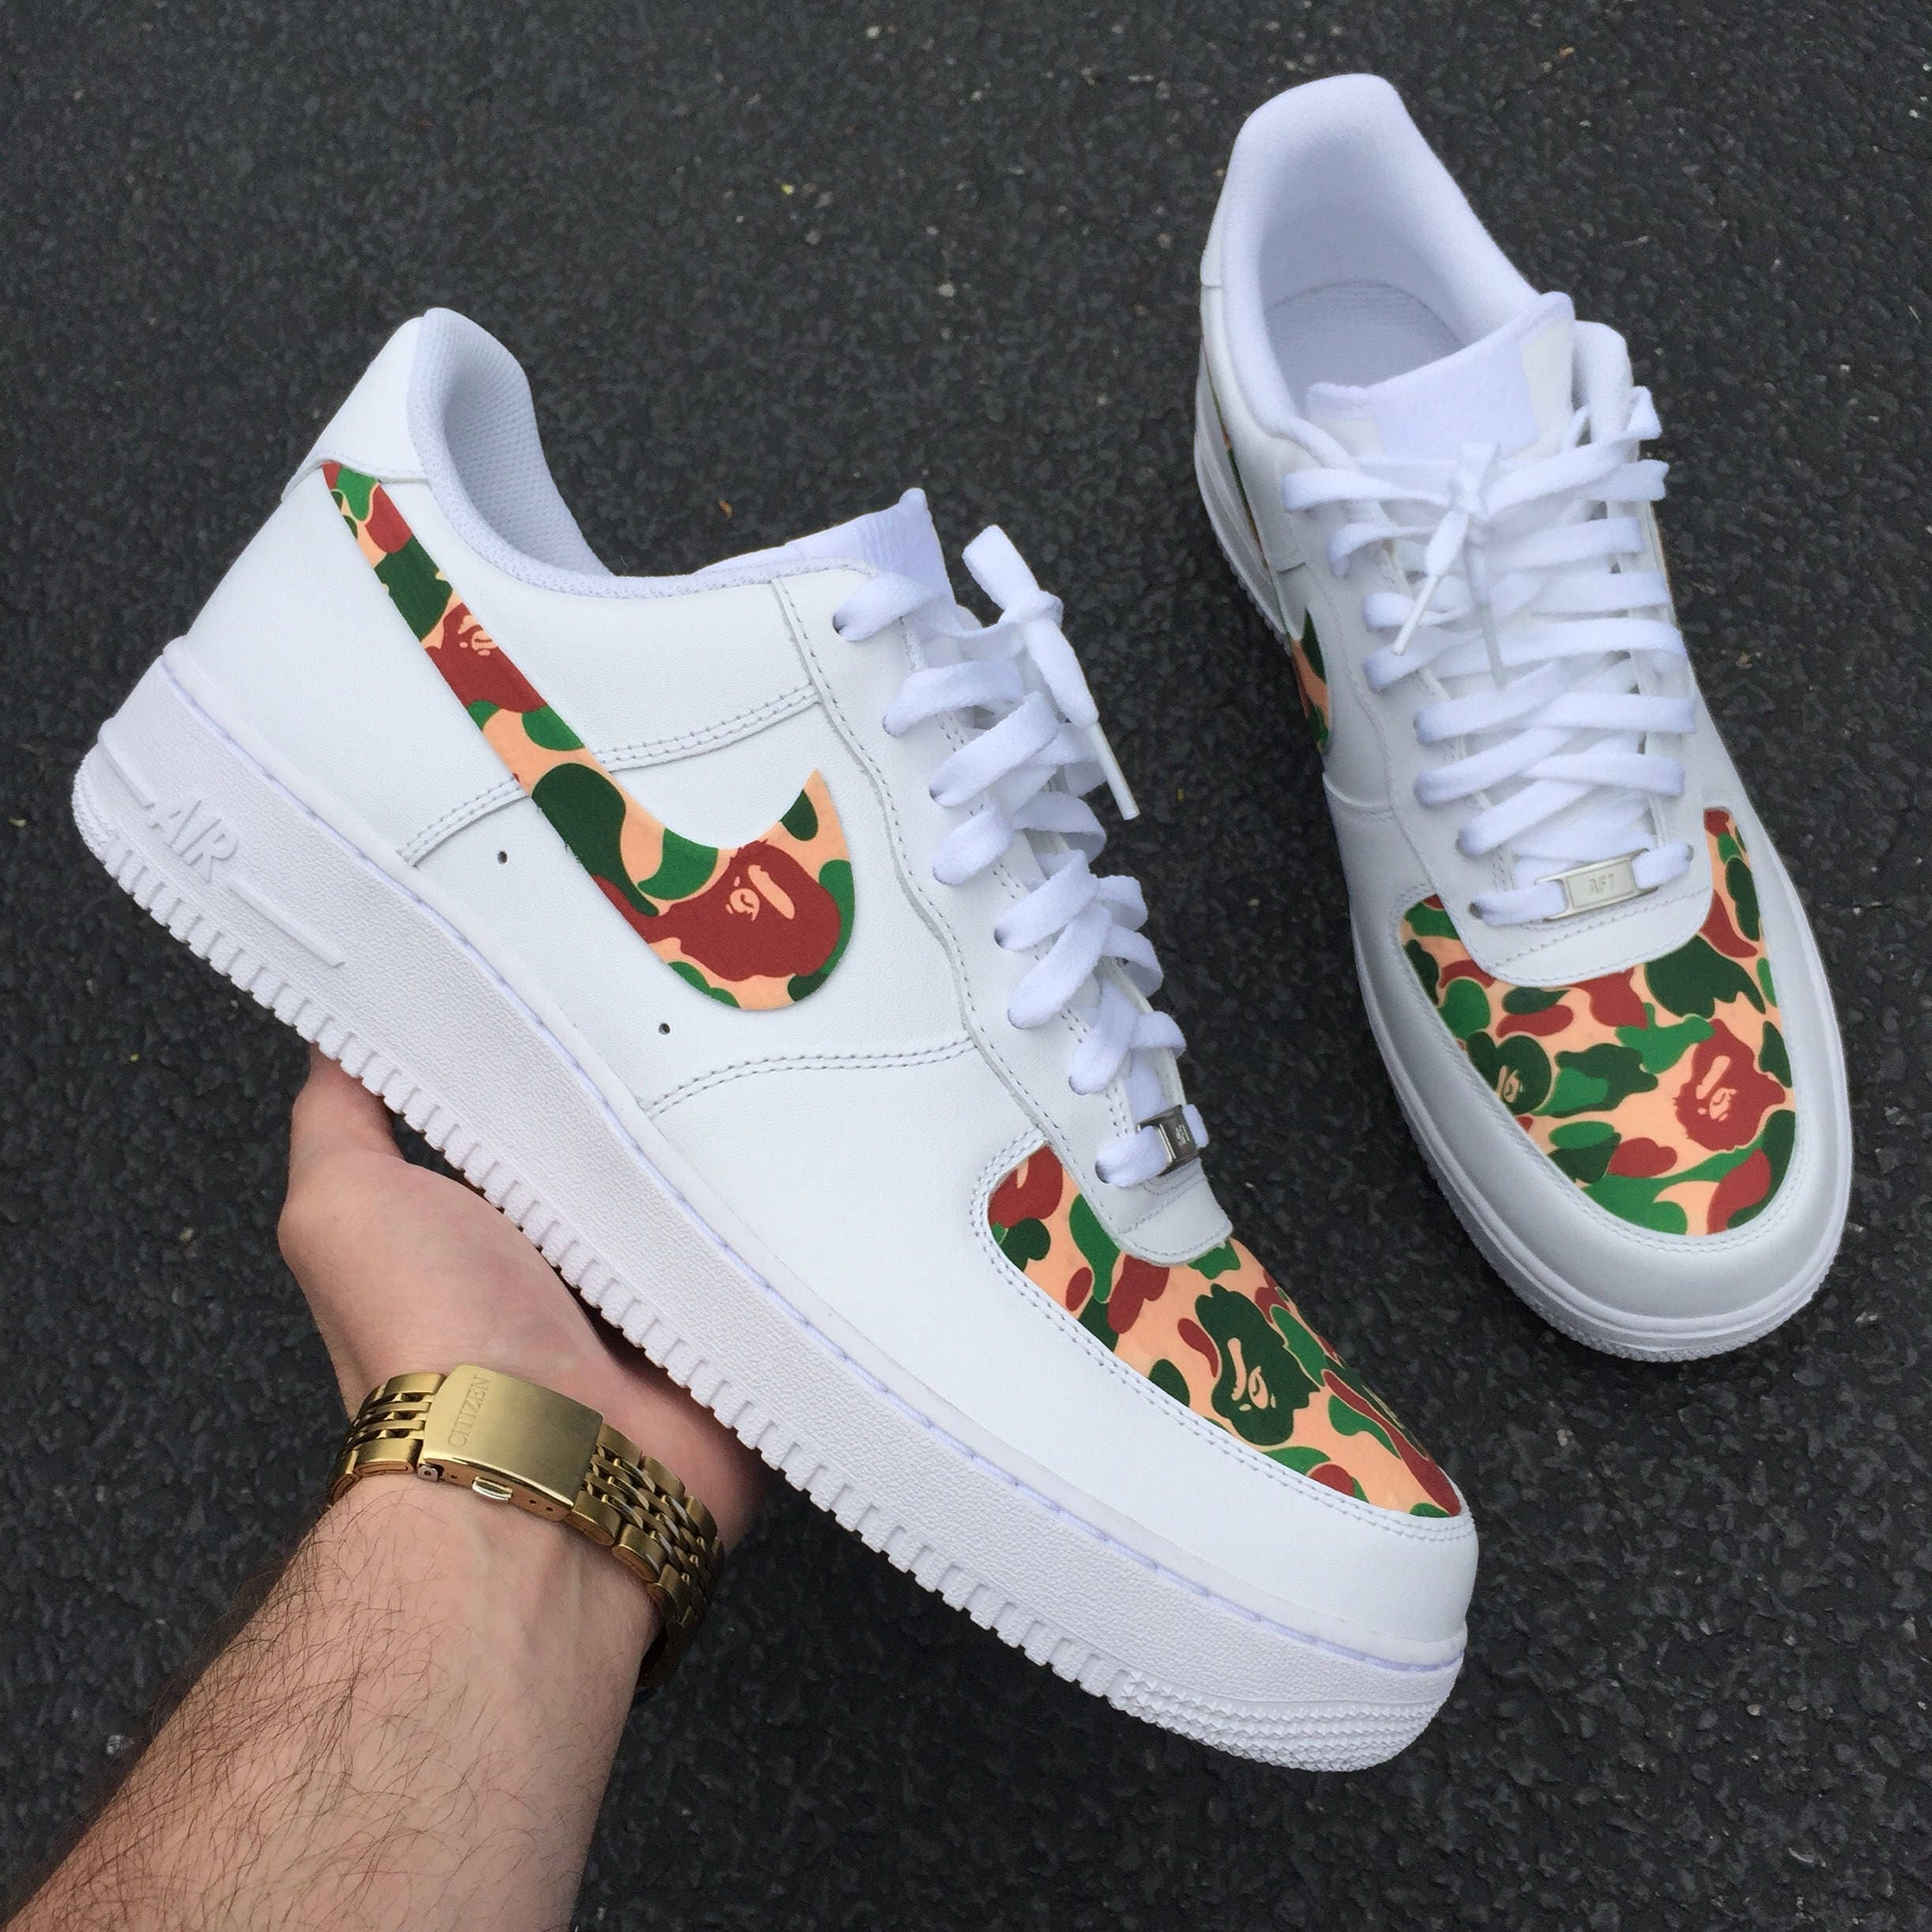 Nike Air Force One Refonte Ma Cuisine